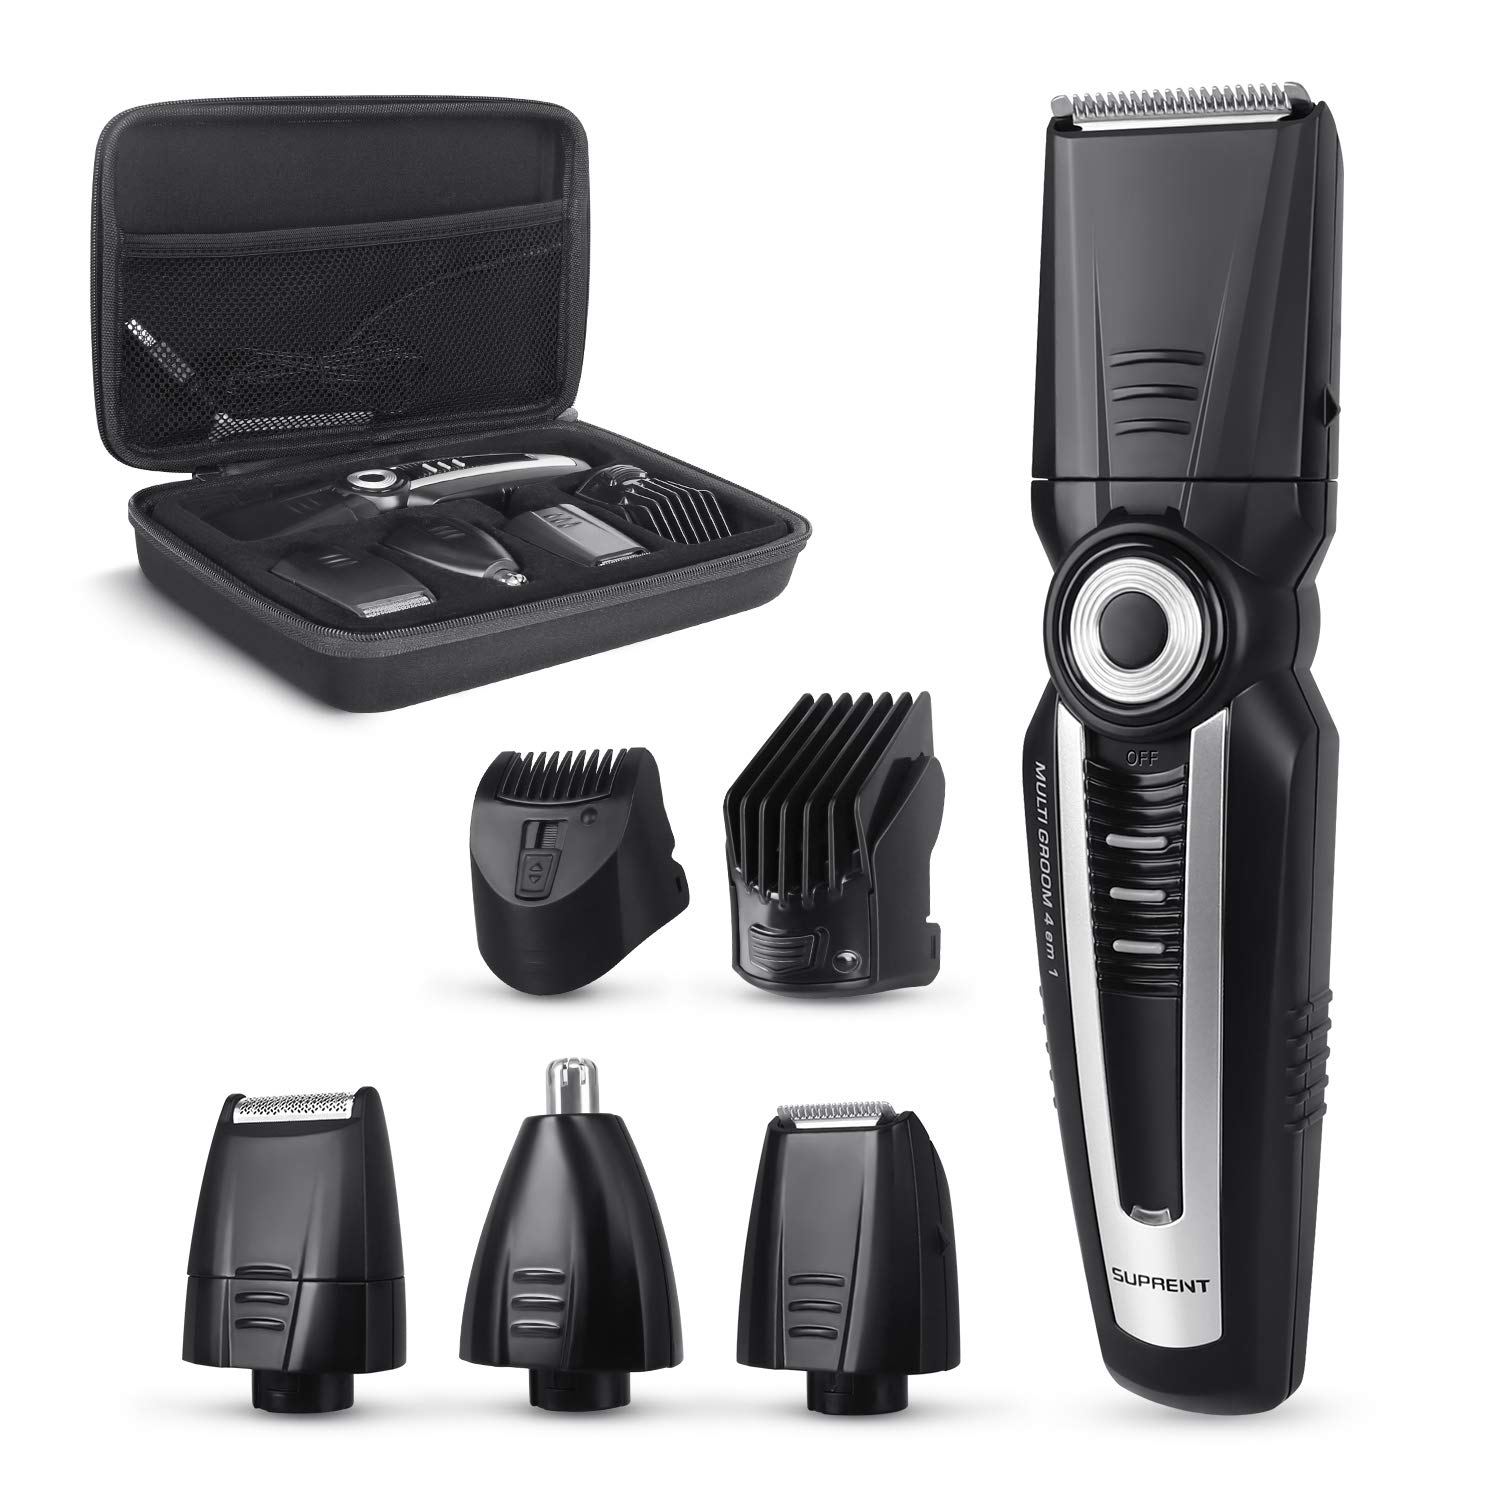 SUPRENT Beard Trimmer Kit, 4 in 1 Multi-functional Body Groomer Kit of Mustache Trimmer, Nose Hair Trimmer and Precision Trimmer, Storage Bag,Rechargeable Cordless BT275B-15